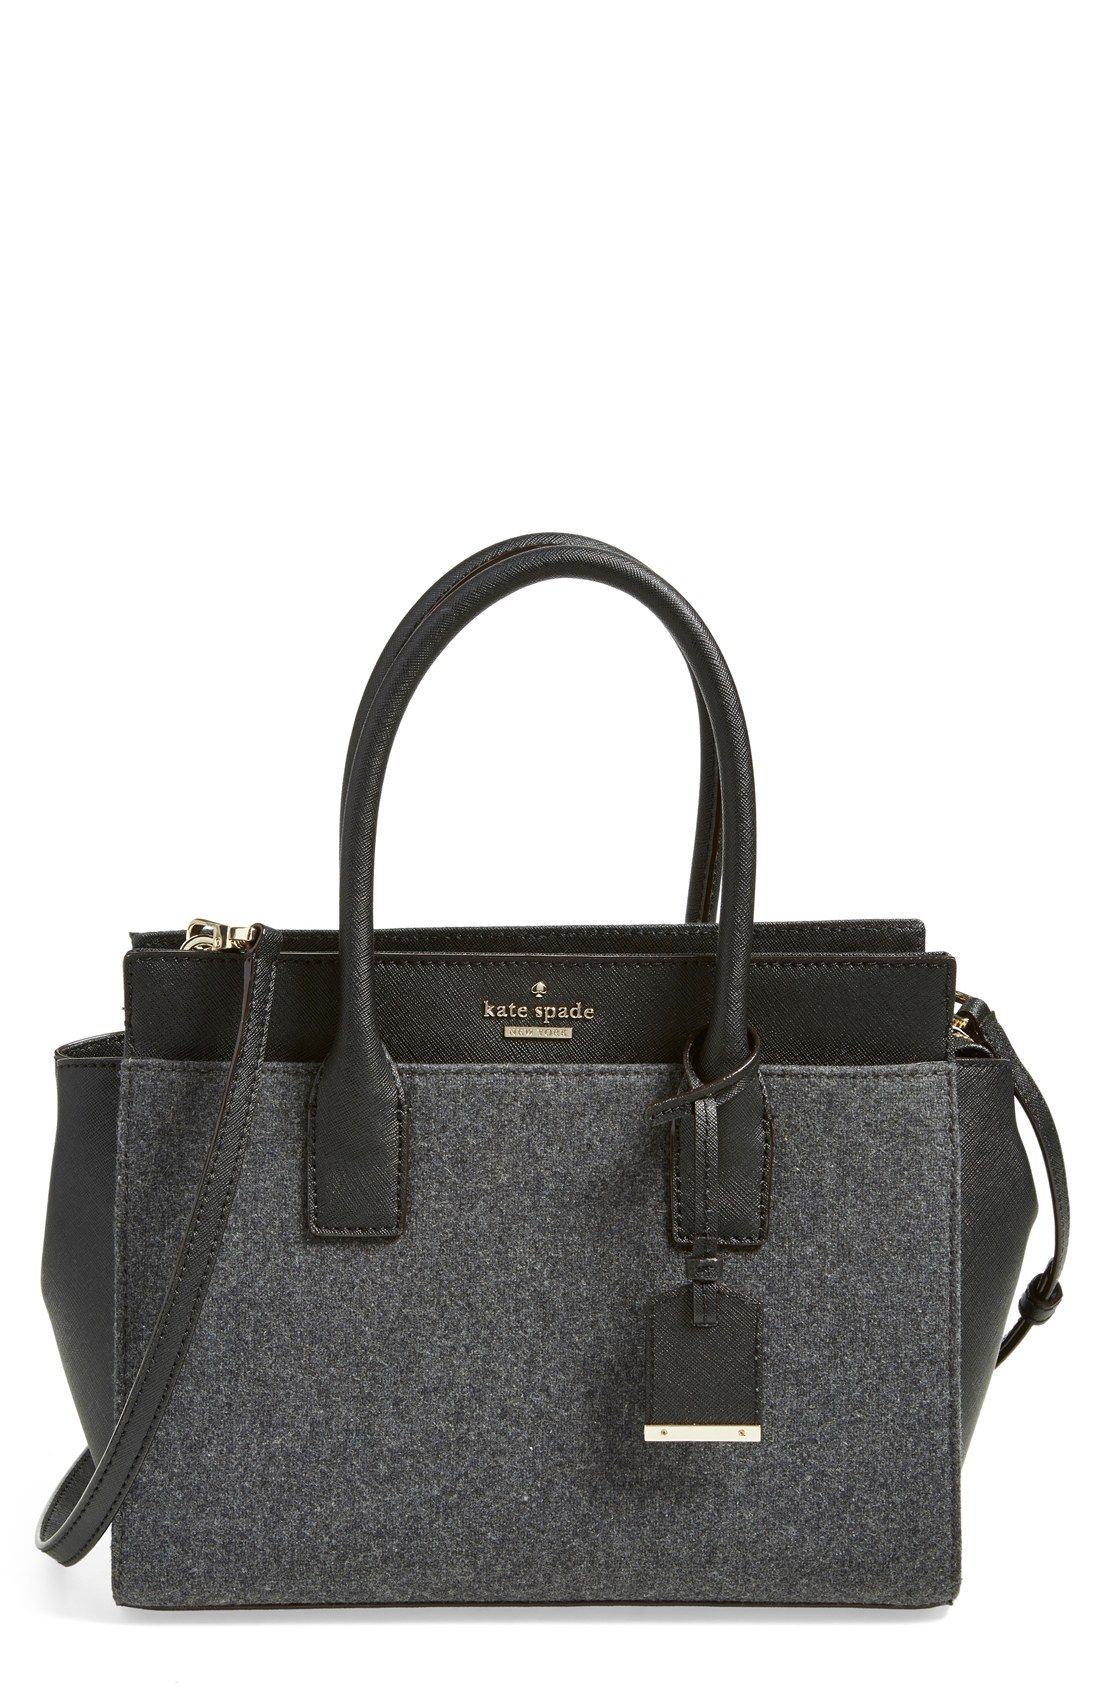 3ab2055f0 The heather grey flannel and the structured shape of this Kate Spade  satchel makes it the perfect go-to bag for fall.